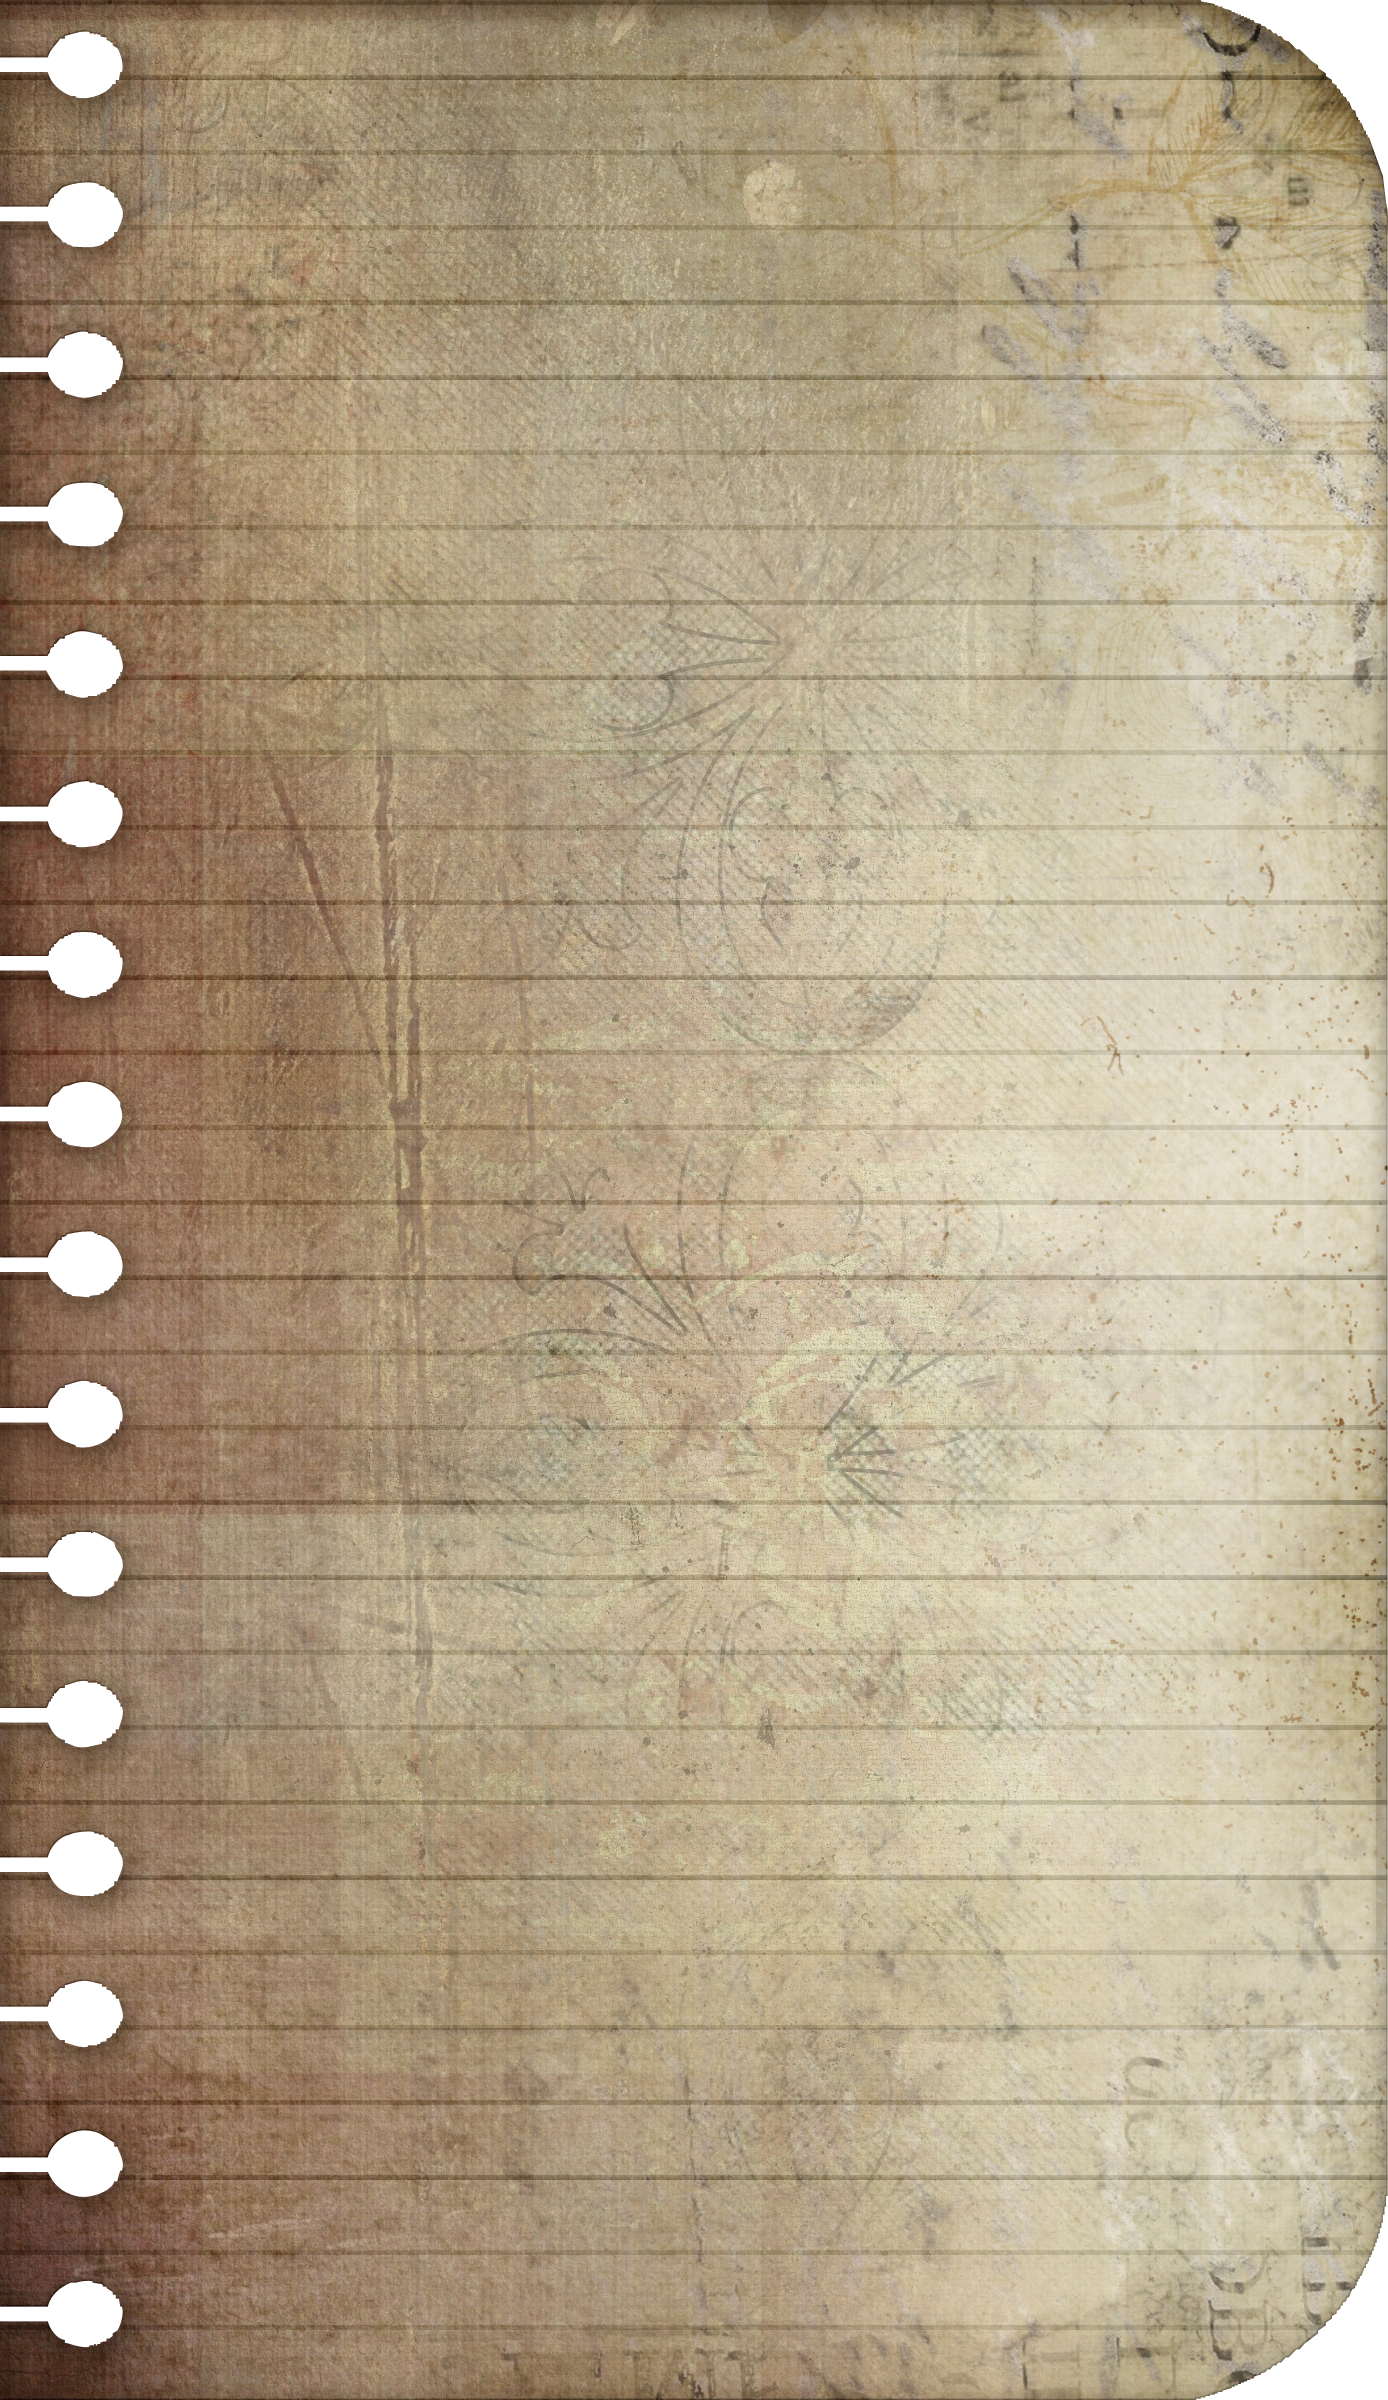 Scrapbook paper wood grain - Altered Memories Digital Scrapbook Papervintage